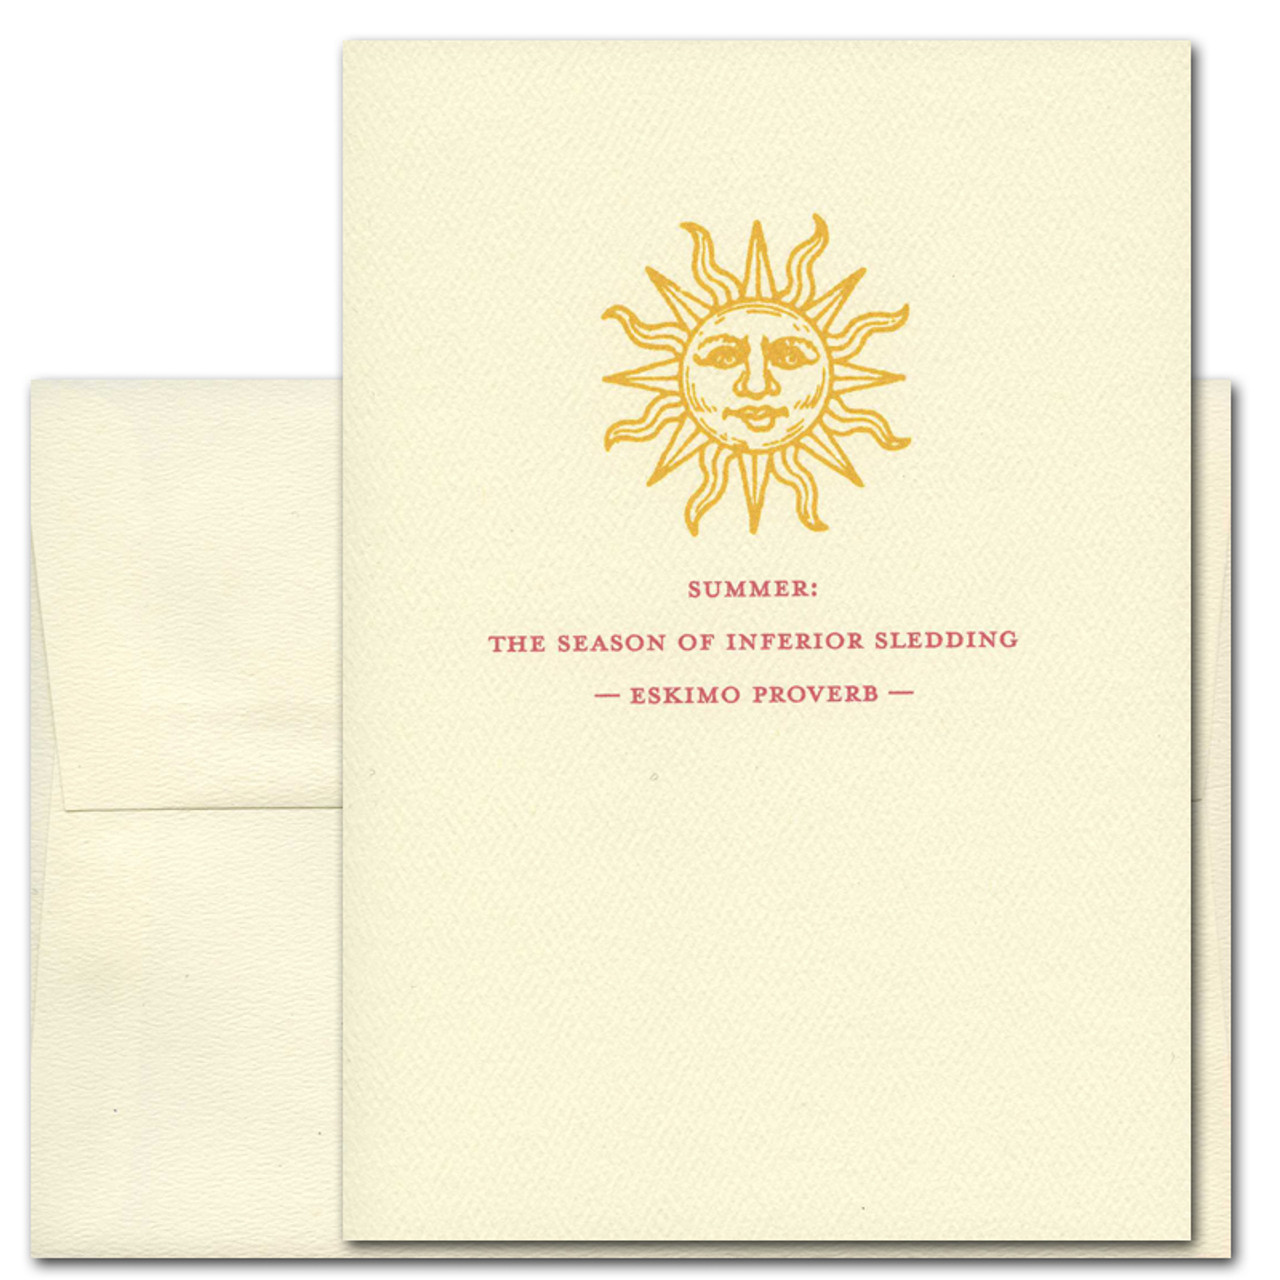 "Quotation Card ""Summer: Eskimo Proverb"" Cover showing vintage illustration of a golden sun with face and an Eskimo Proverb reading ""Summer: the season of inferior sledding."""